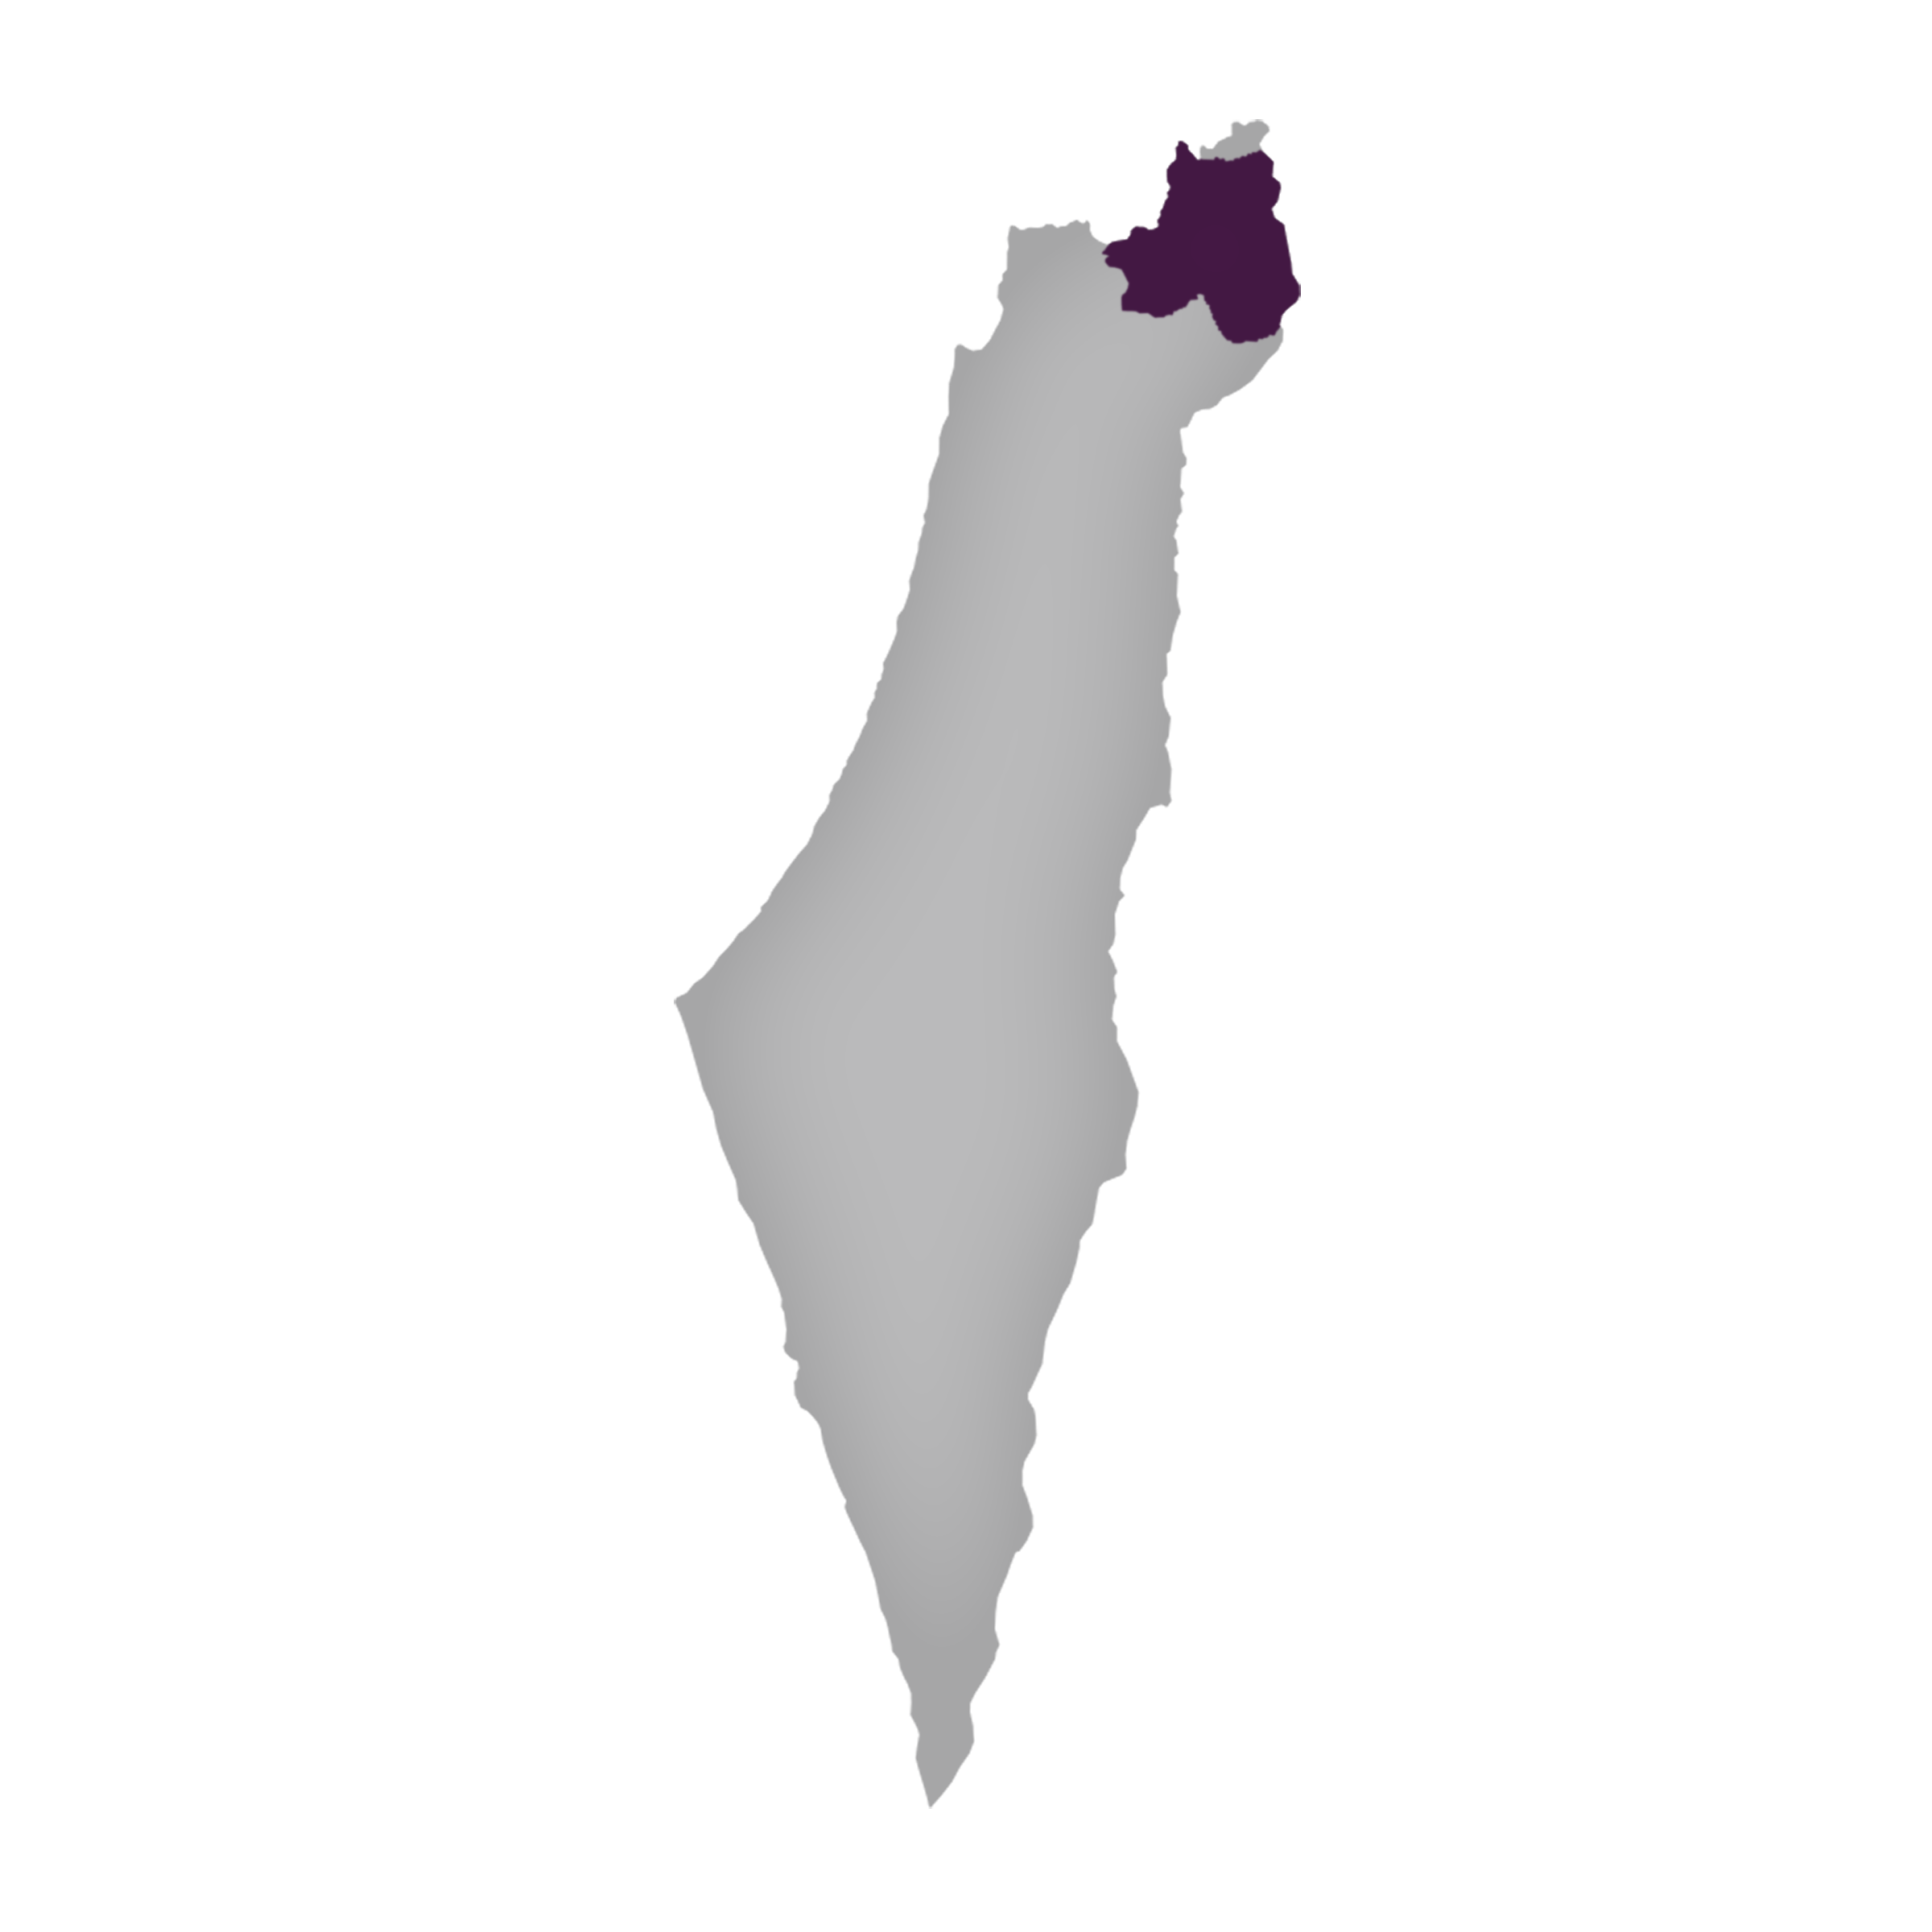 Region: Galilee